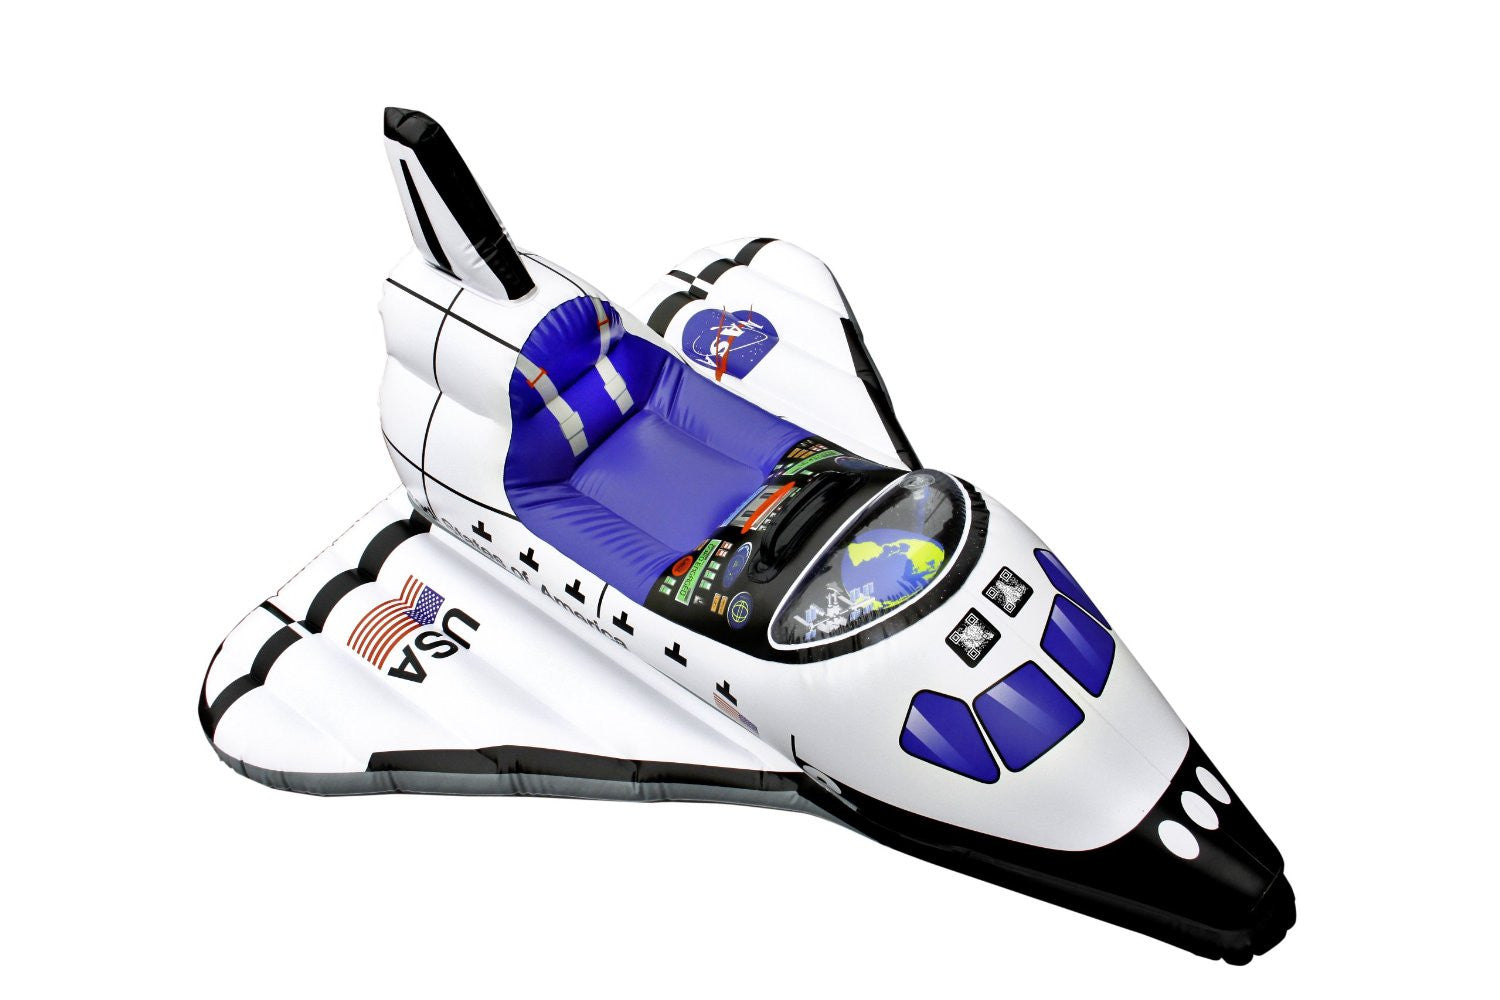 Aeromax Jr. Space Explorer - Inflatable Space Shuttle Float - Off The Wall Toys and Gifts